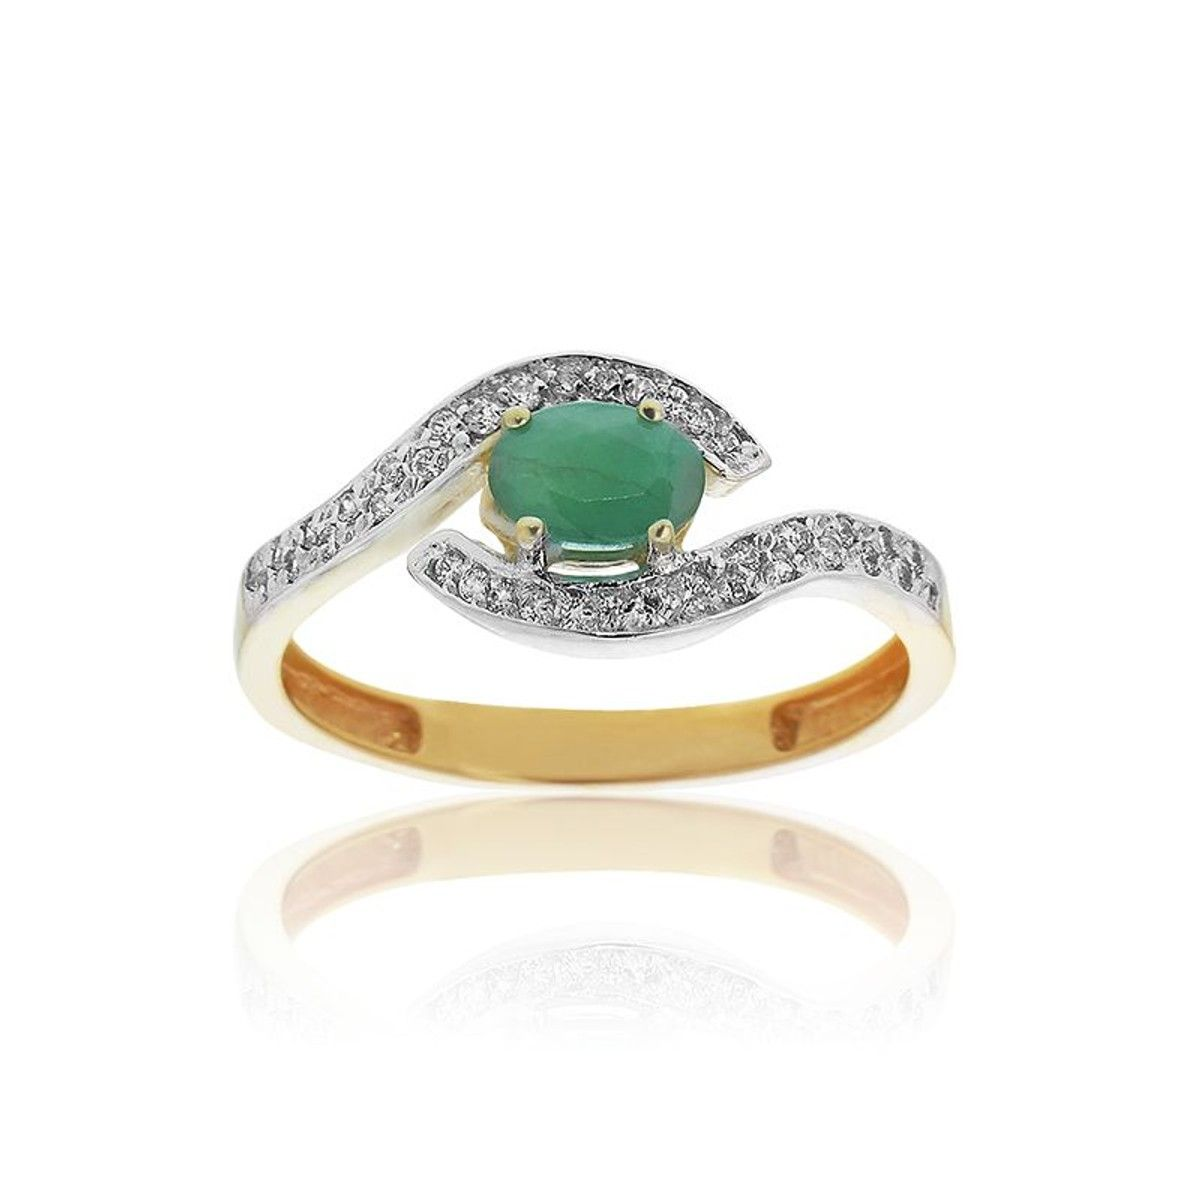 Verte 3751000 Emeraude Bague En Or Et 2019Products H2ED9IWYe